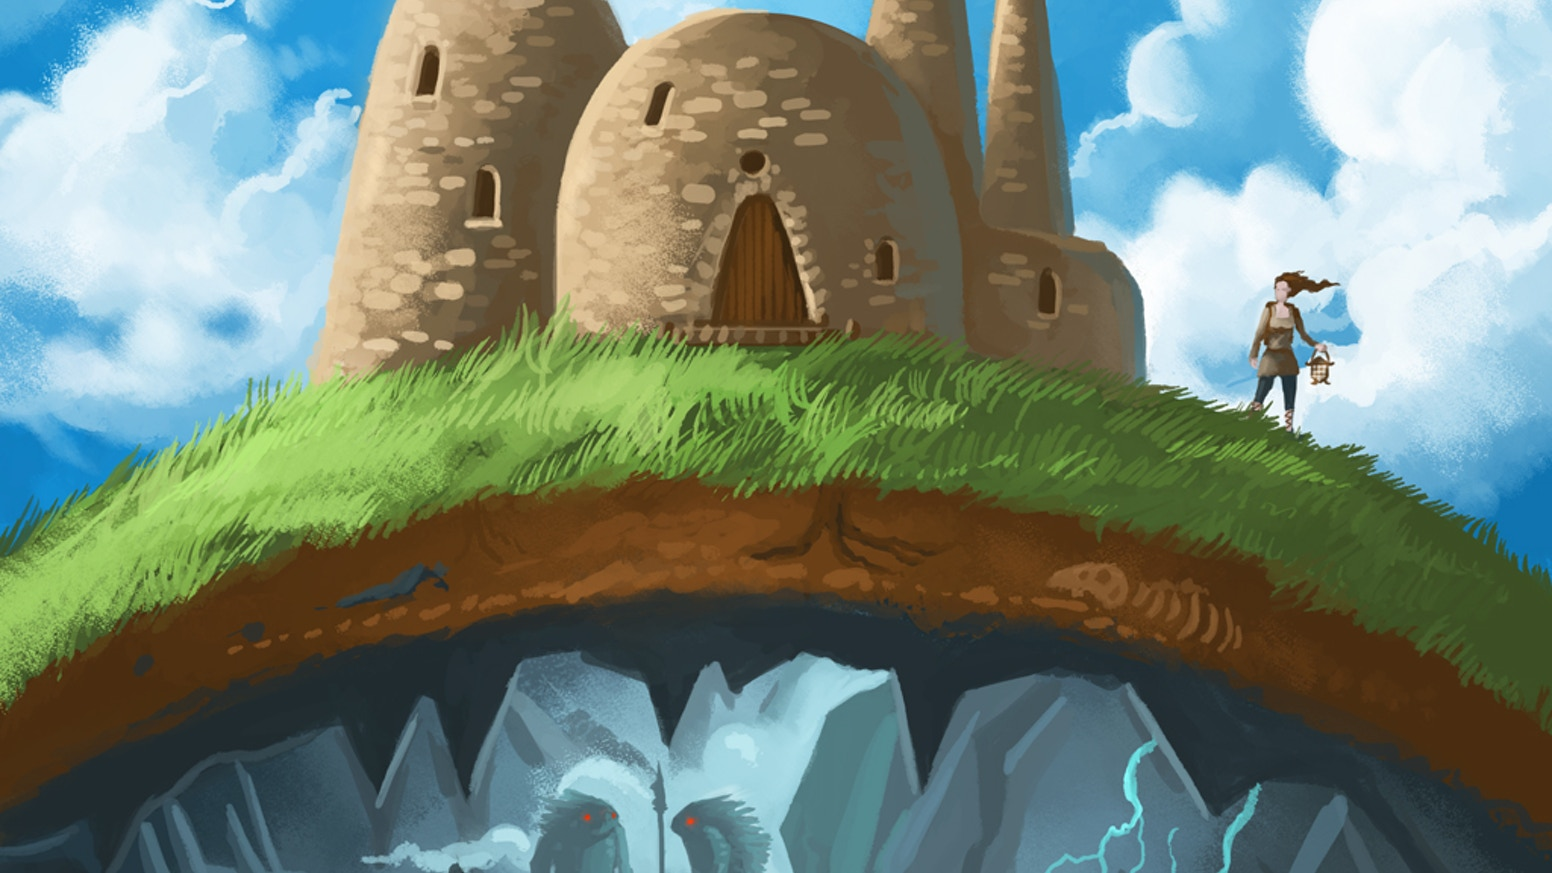 Explore a massive cavern and build your new village above and below ground in this storytelling/town-building mashup board game.